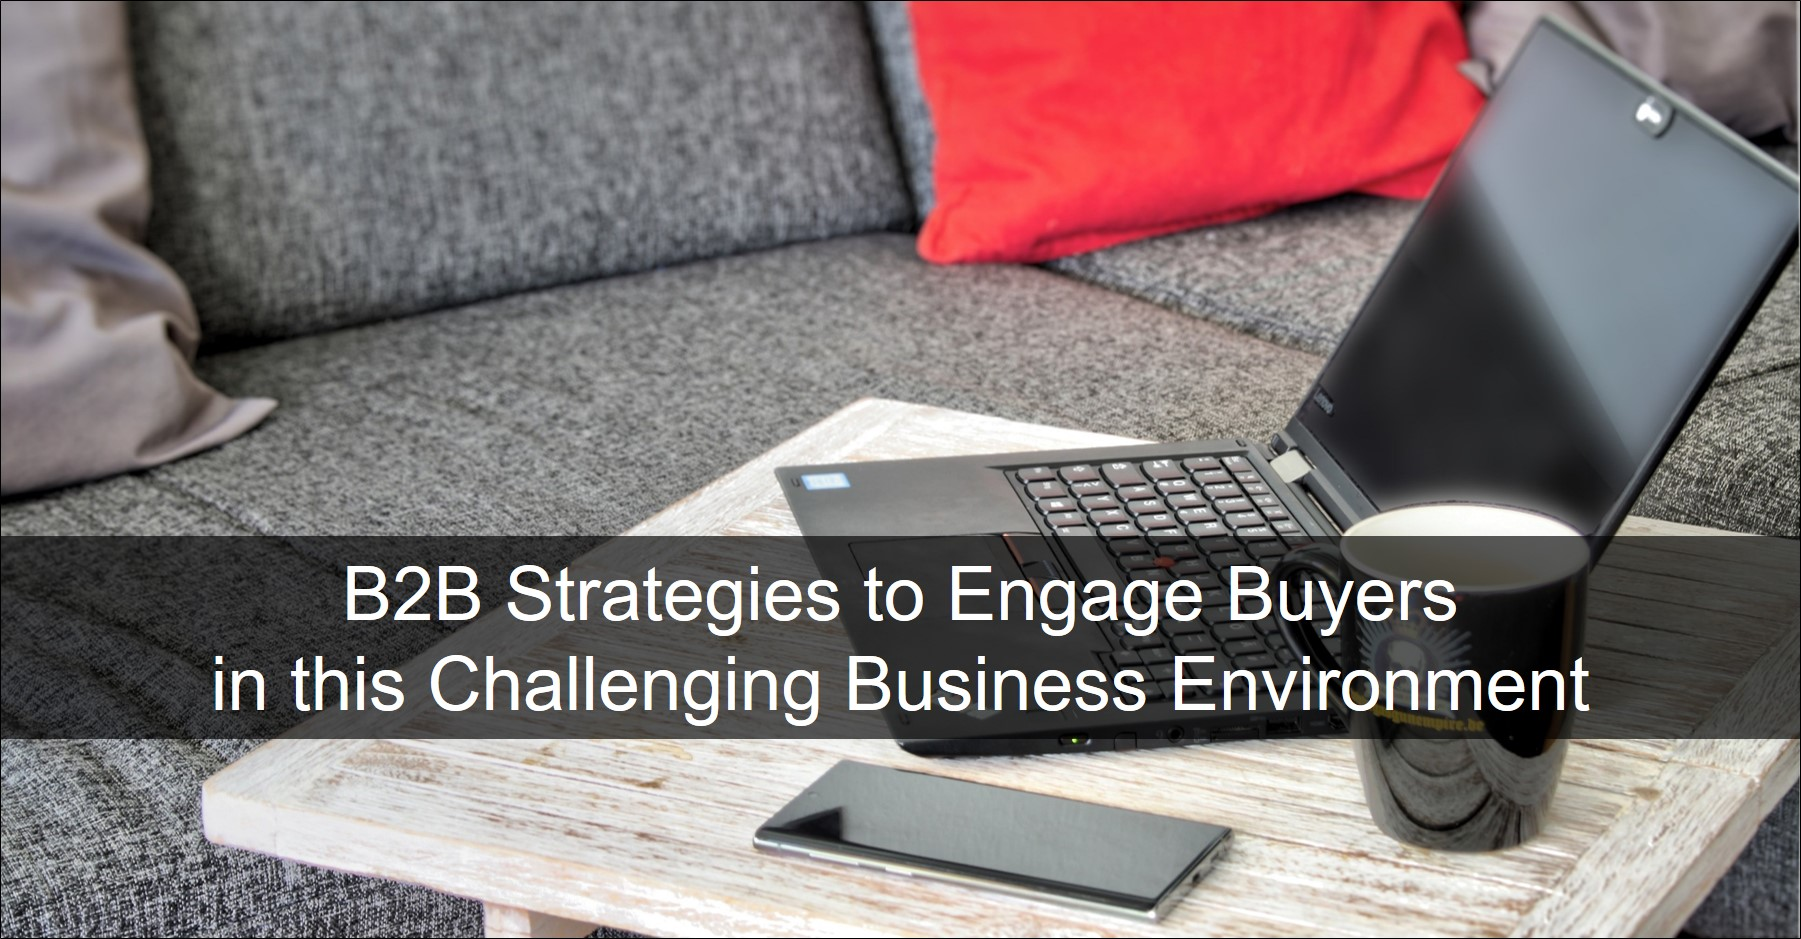 B2B Strategies for Sales and Marketing in Challenging Times